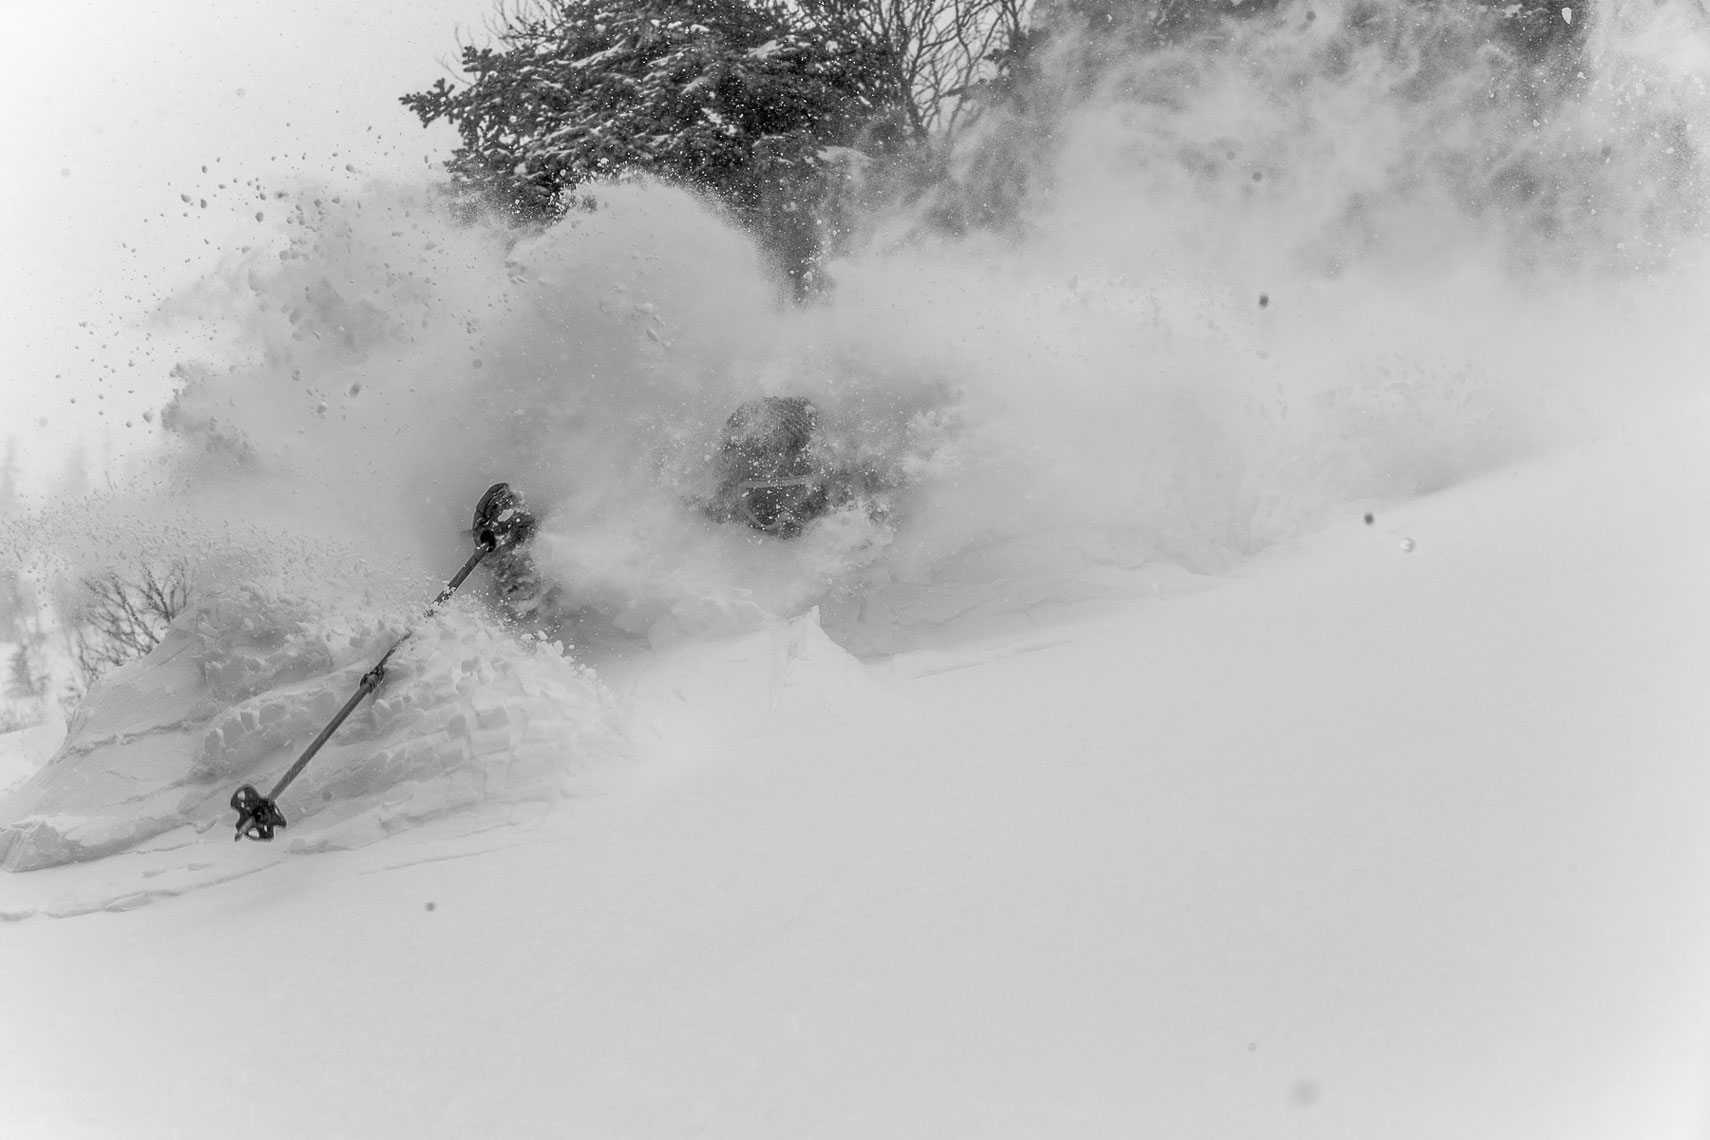 Marcus Caston Skiing Photo: Will Wissman